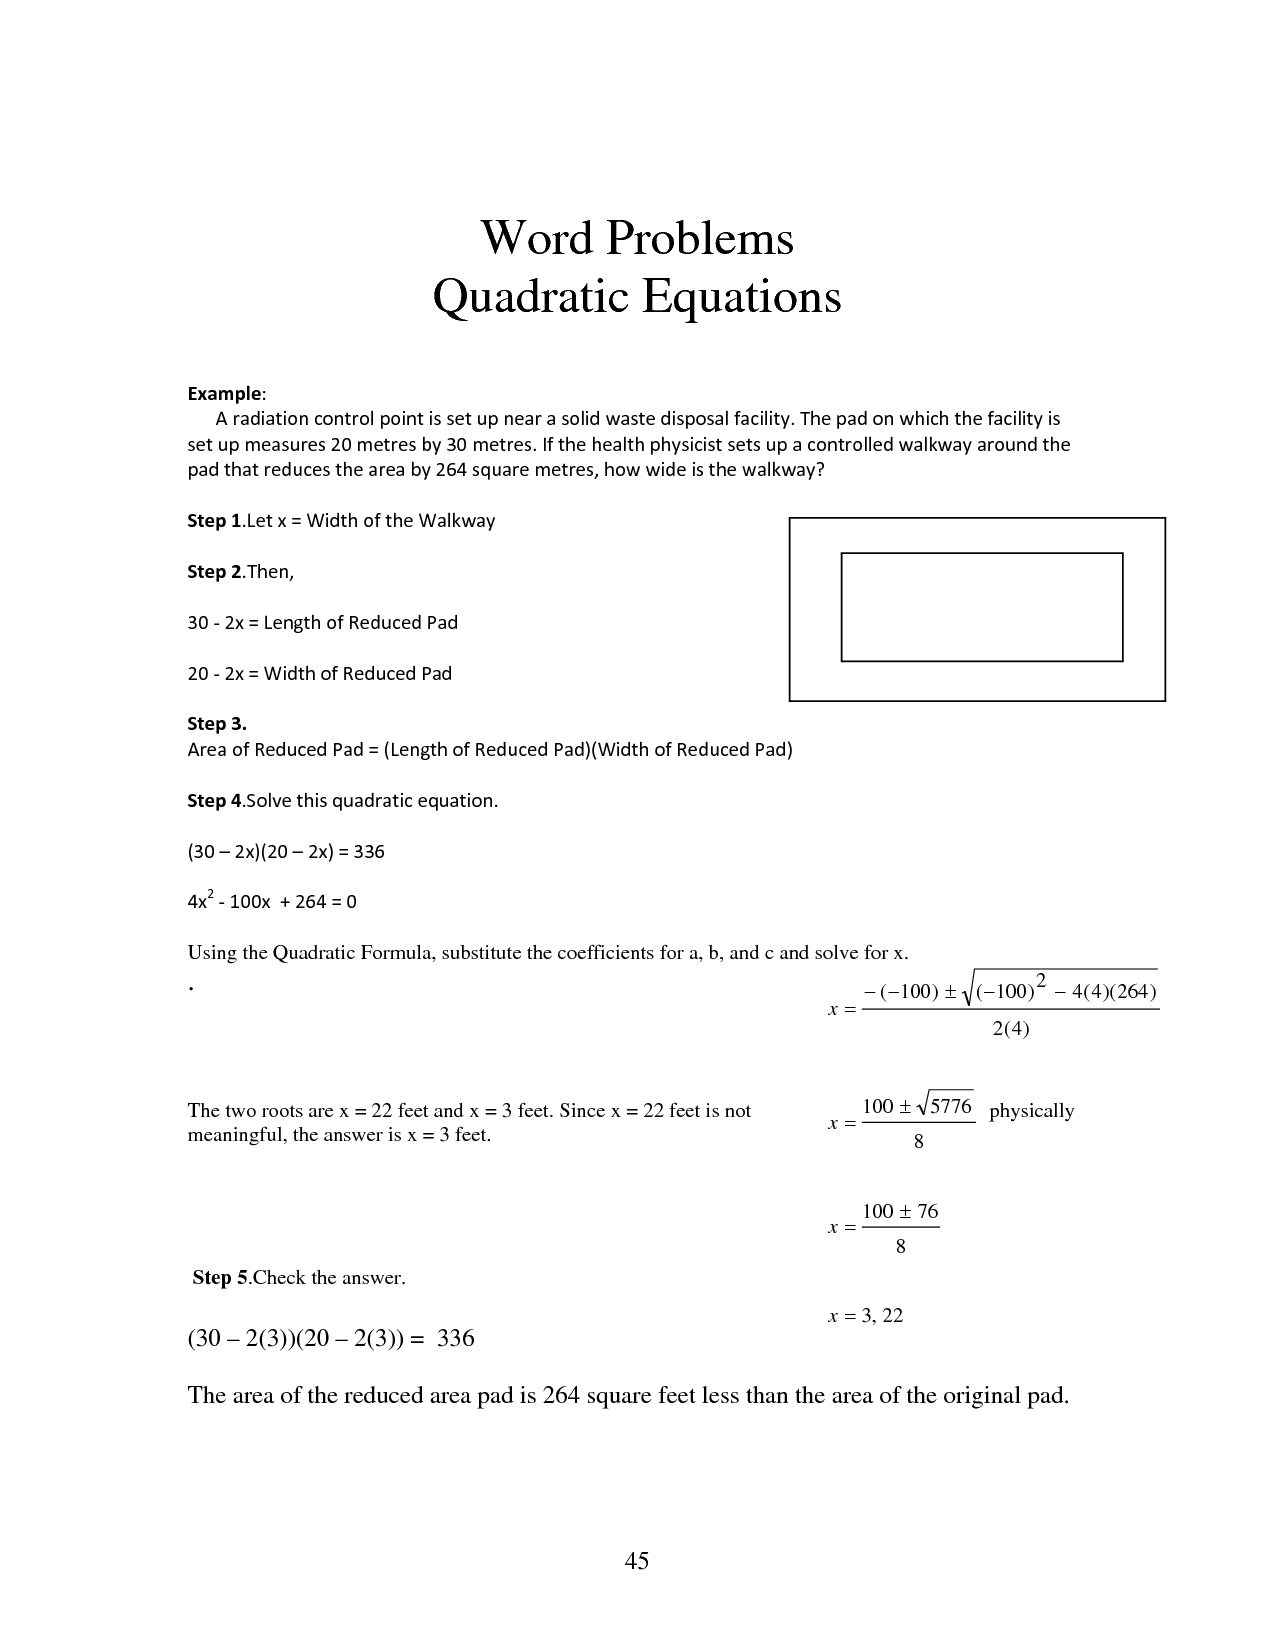 Quadratic Formula Word Problems Worksheet Answer Key